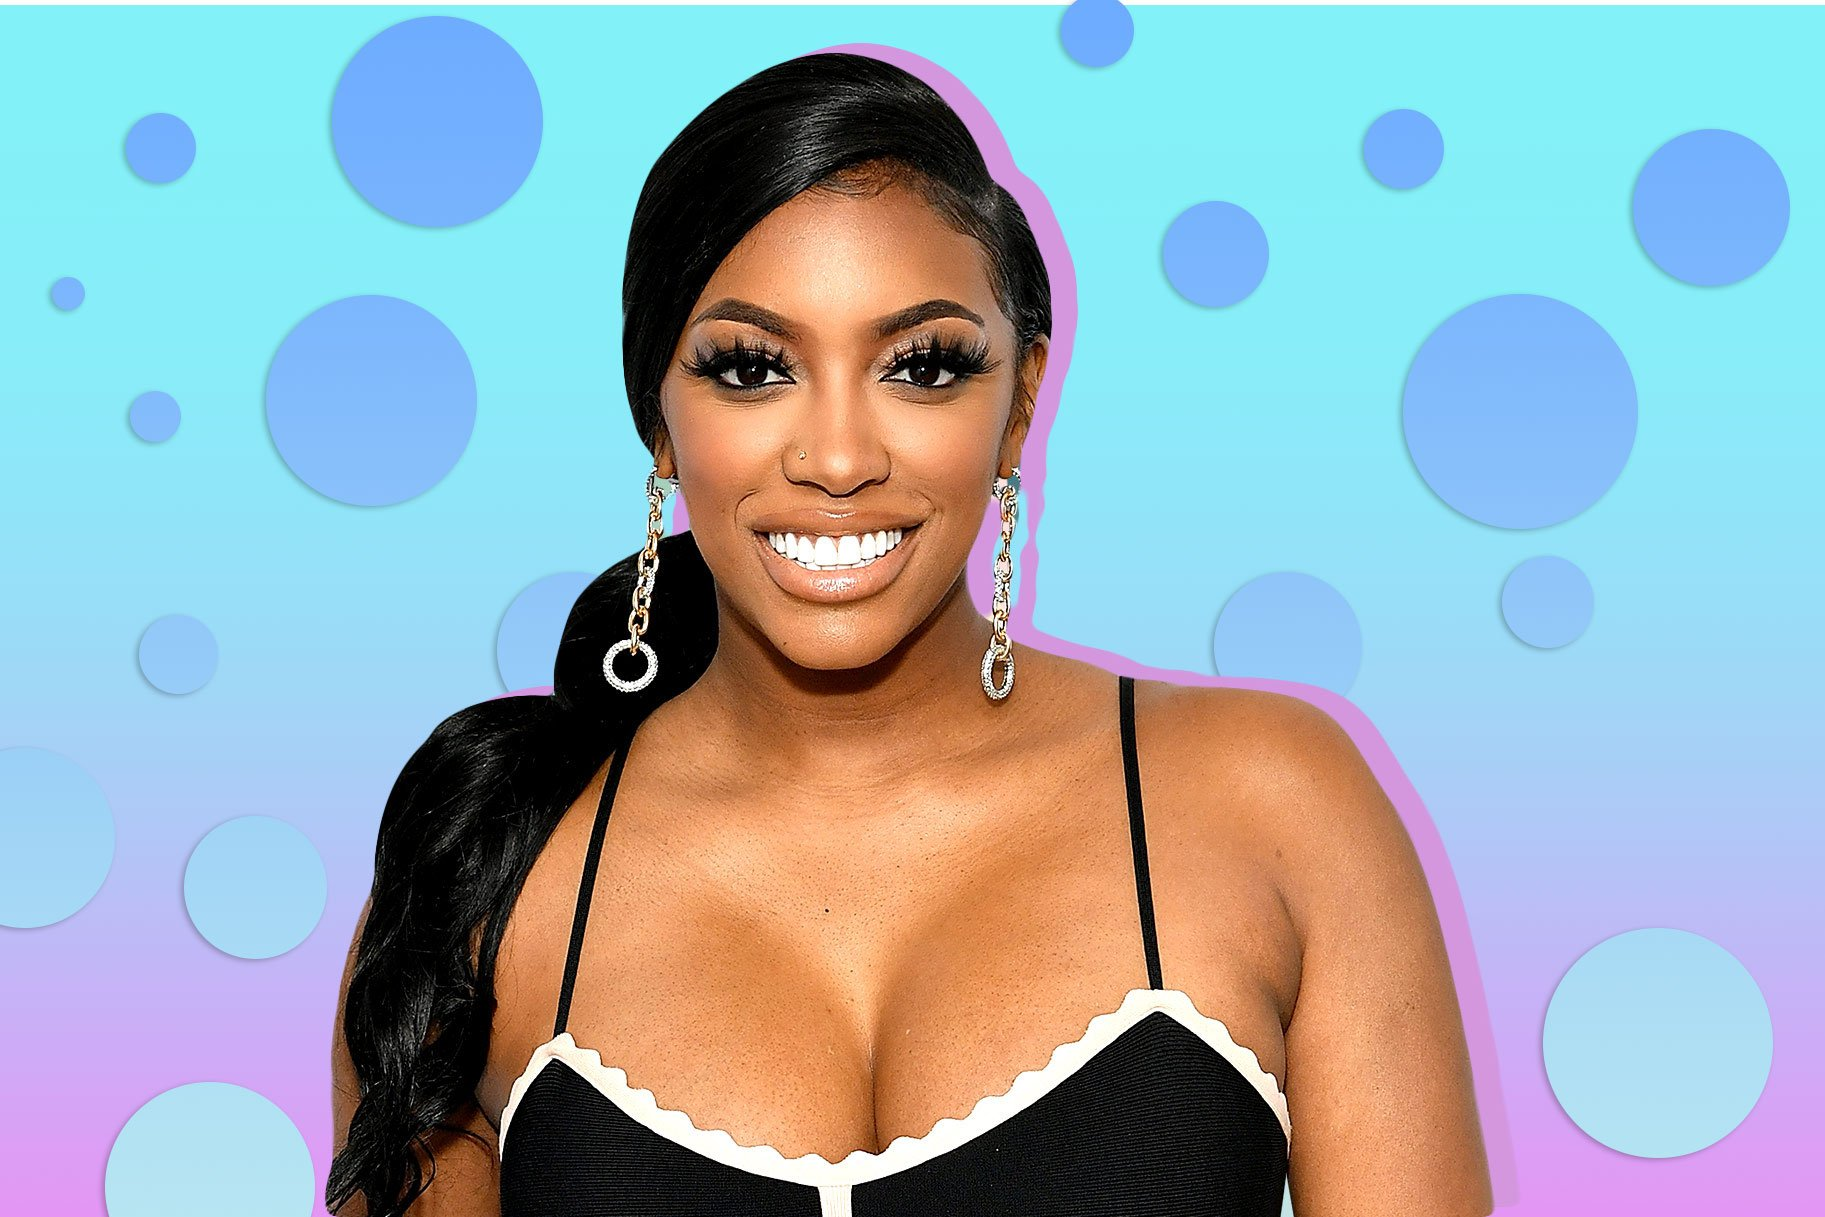 Porsha Williams Will Make Your Day With New Clips And Photos Featuring Baby PJ – Check Them Out